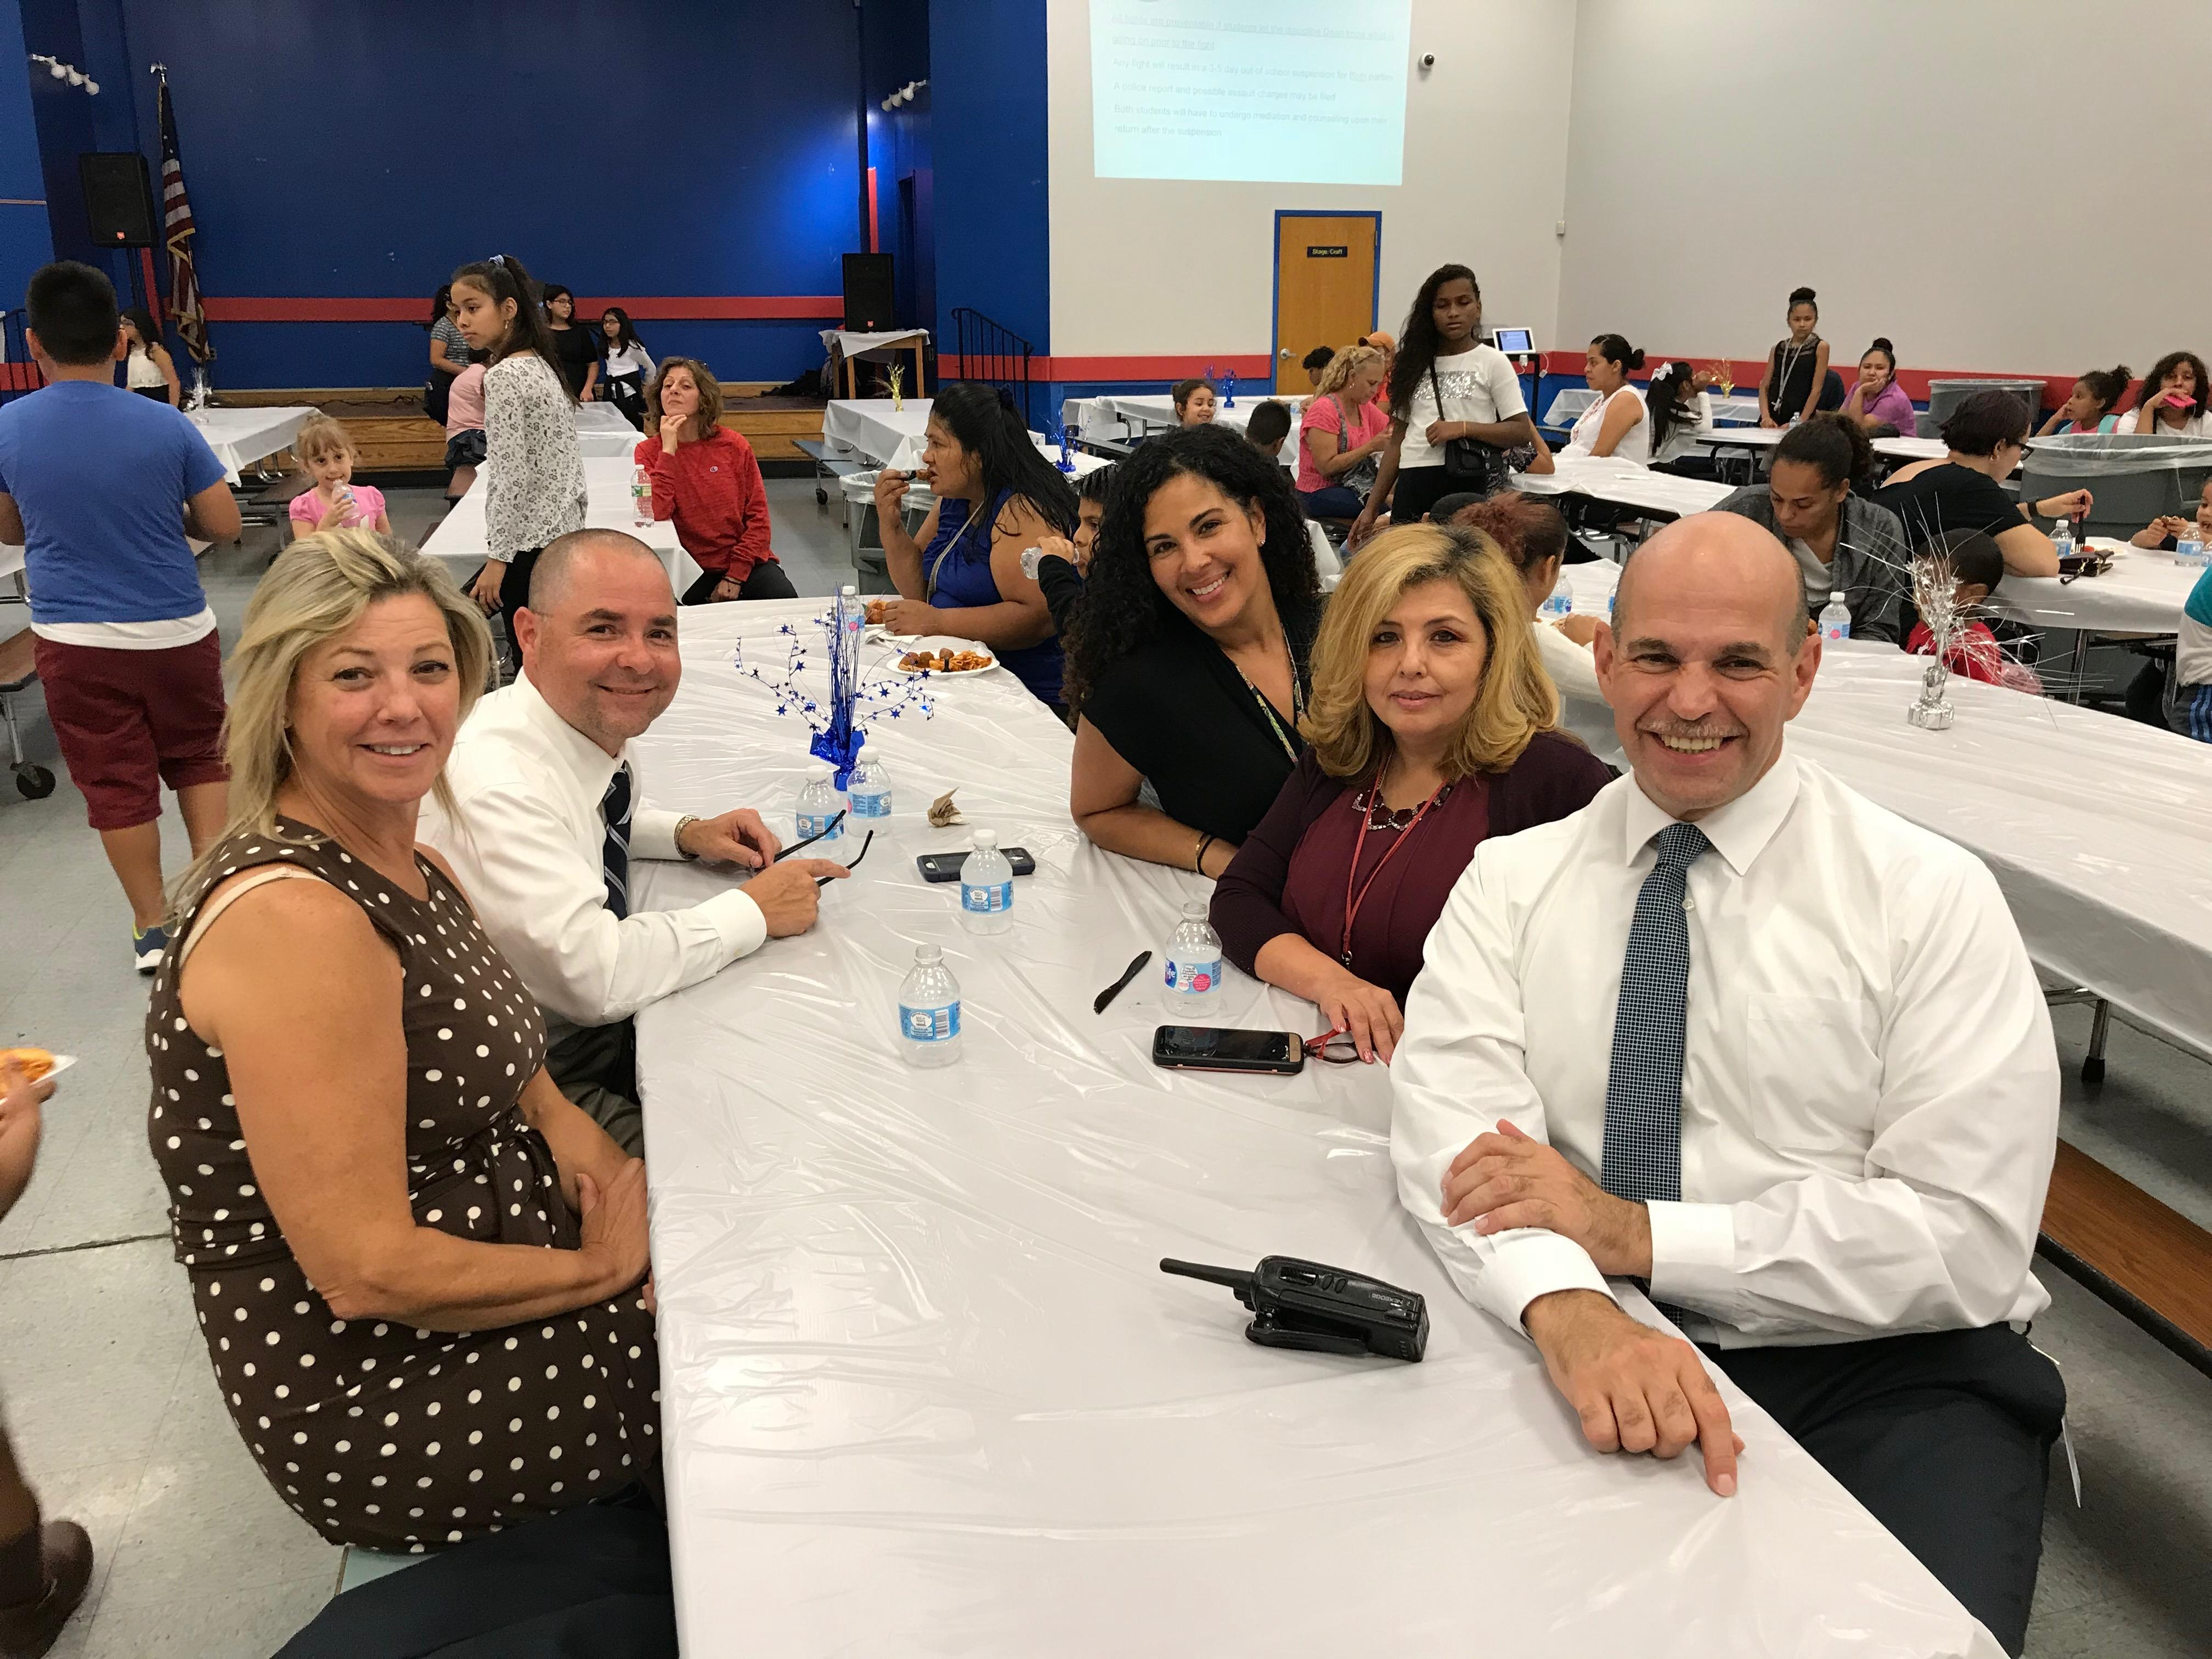 Edison's Administrative team ready to greet parents